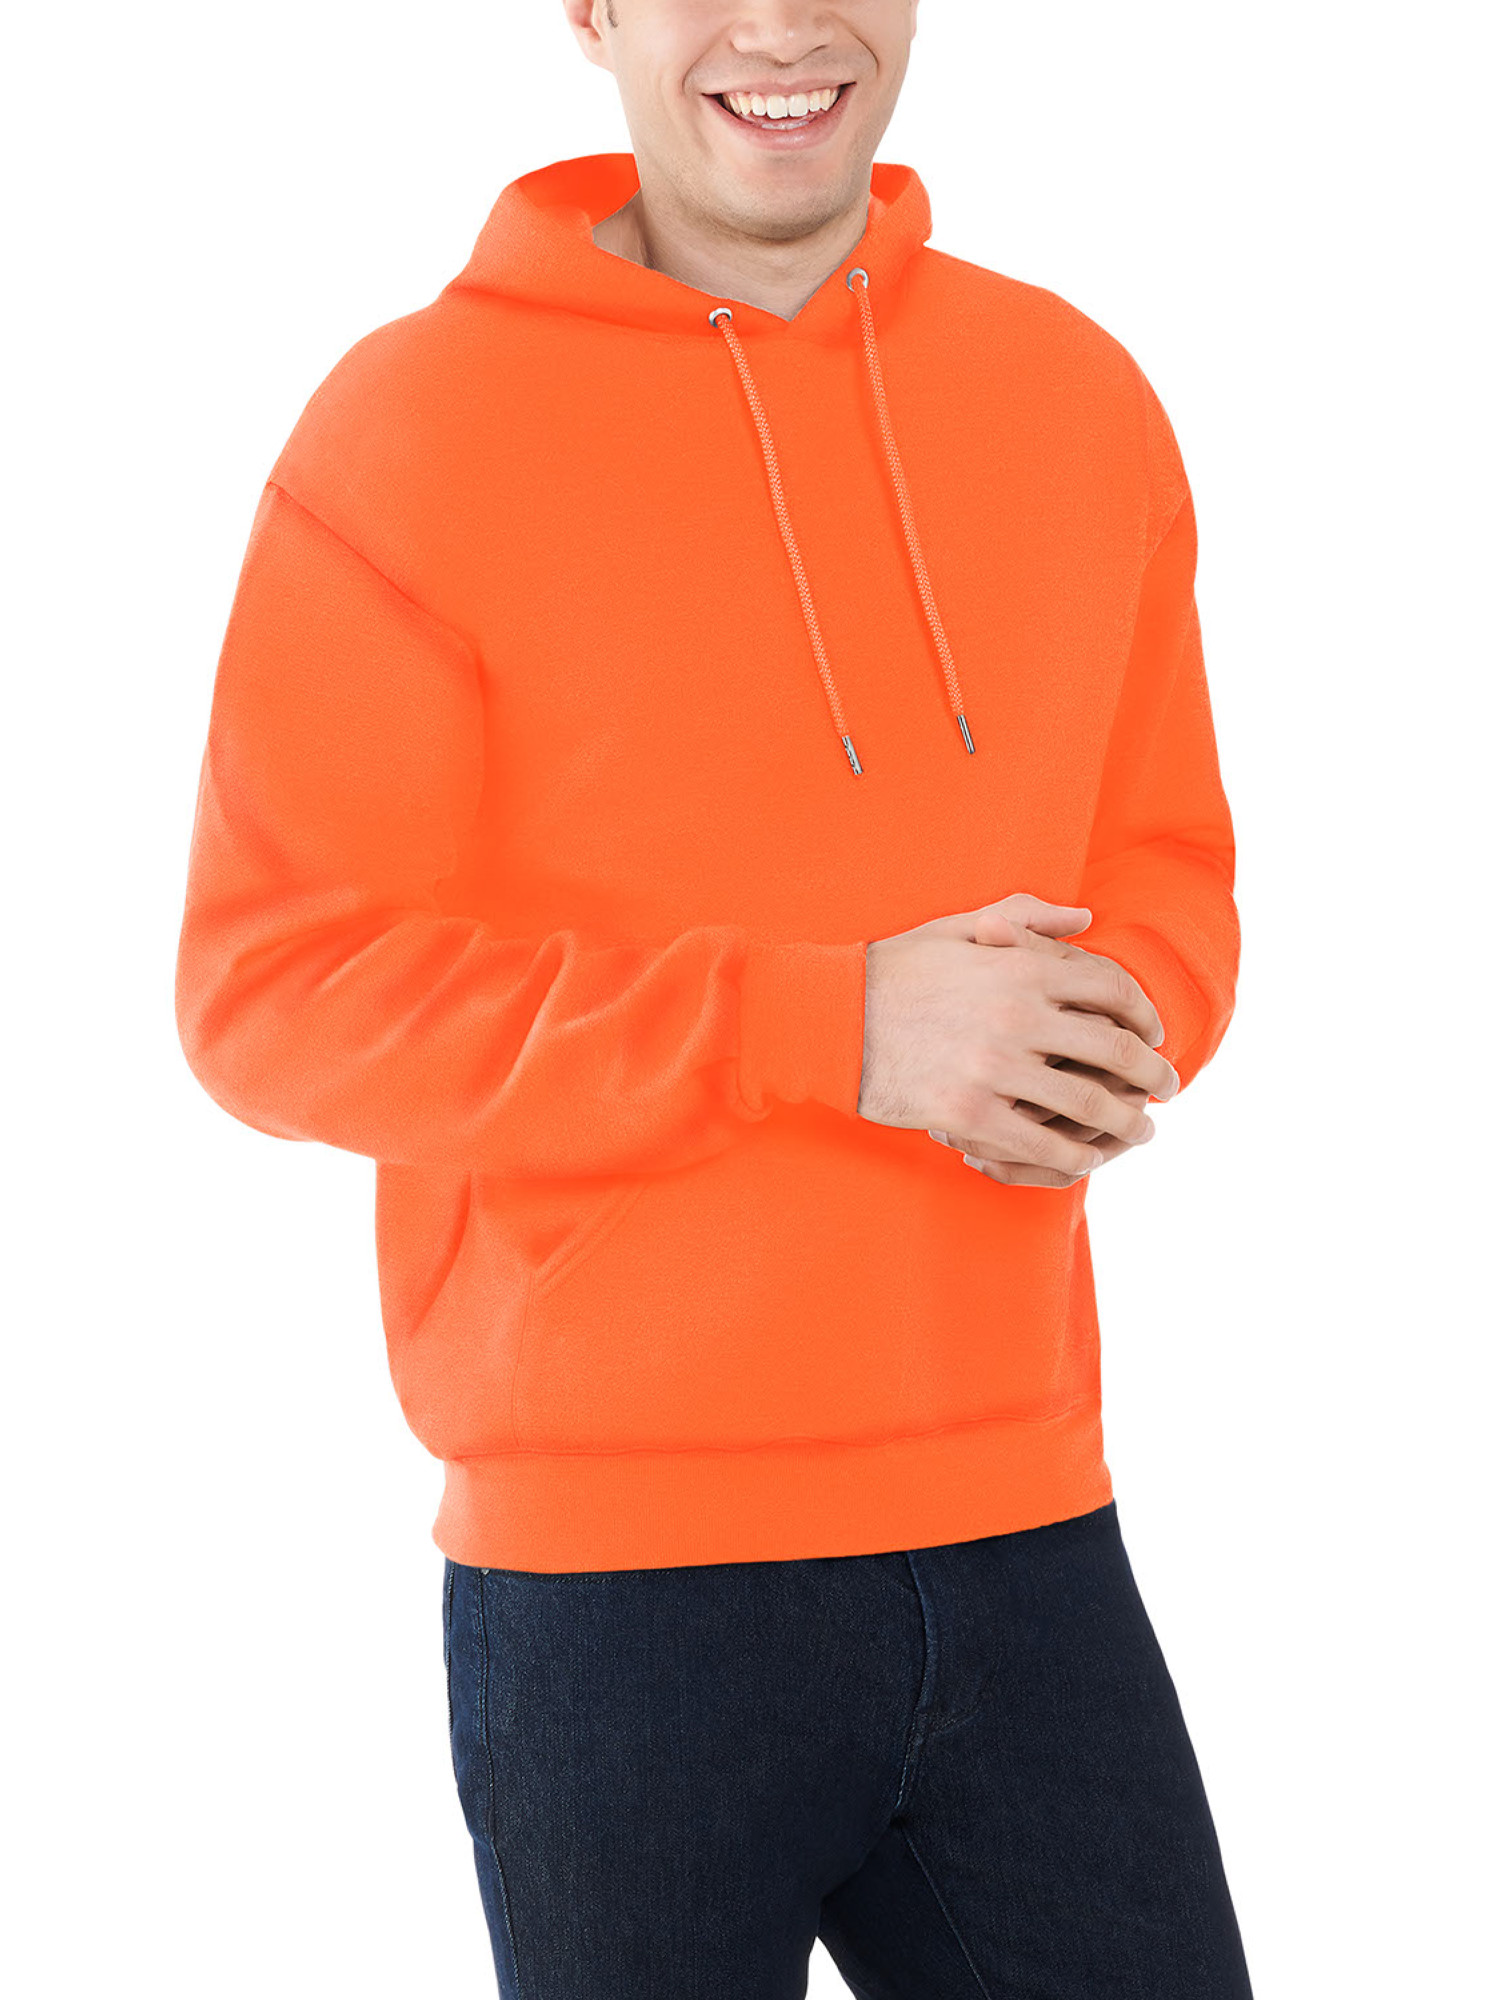 Safety Orange Sweatshirt 3XL Men/'s Hunting NWT Fleece Fruit Of The Loom XXXL